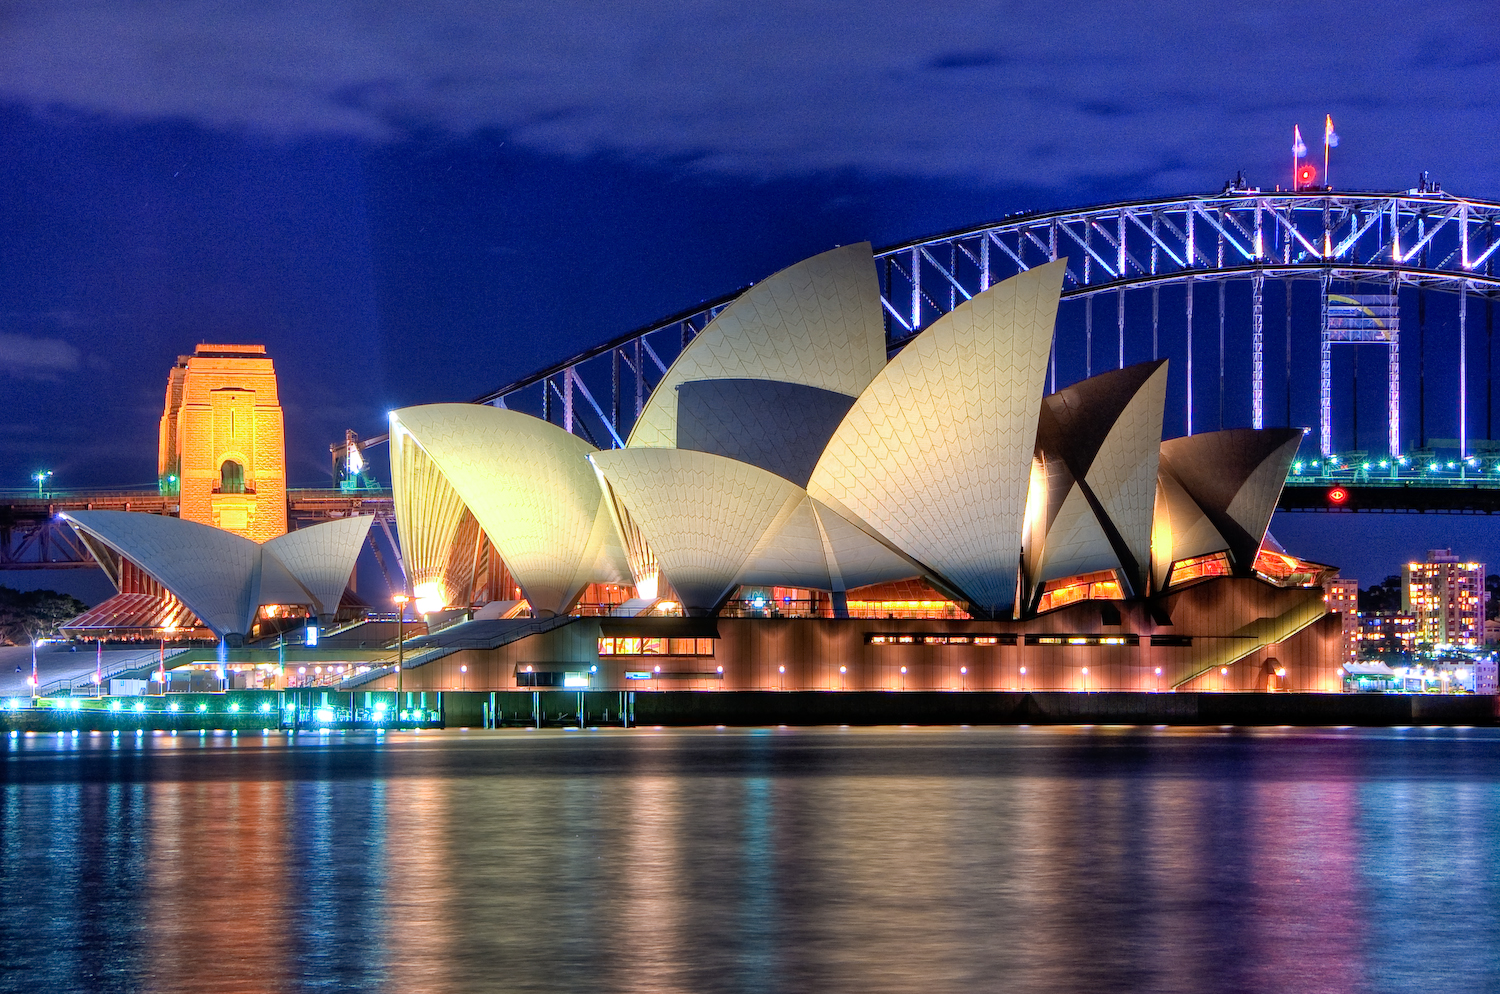 Sydney opera house information and images 2012 world for Sydney opera housse